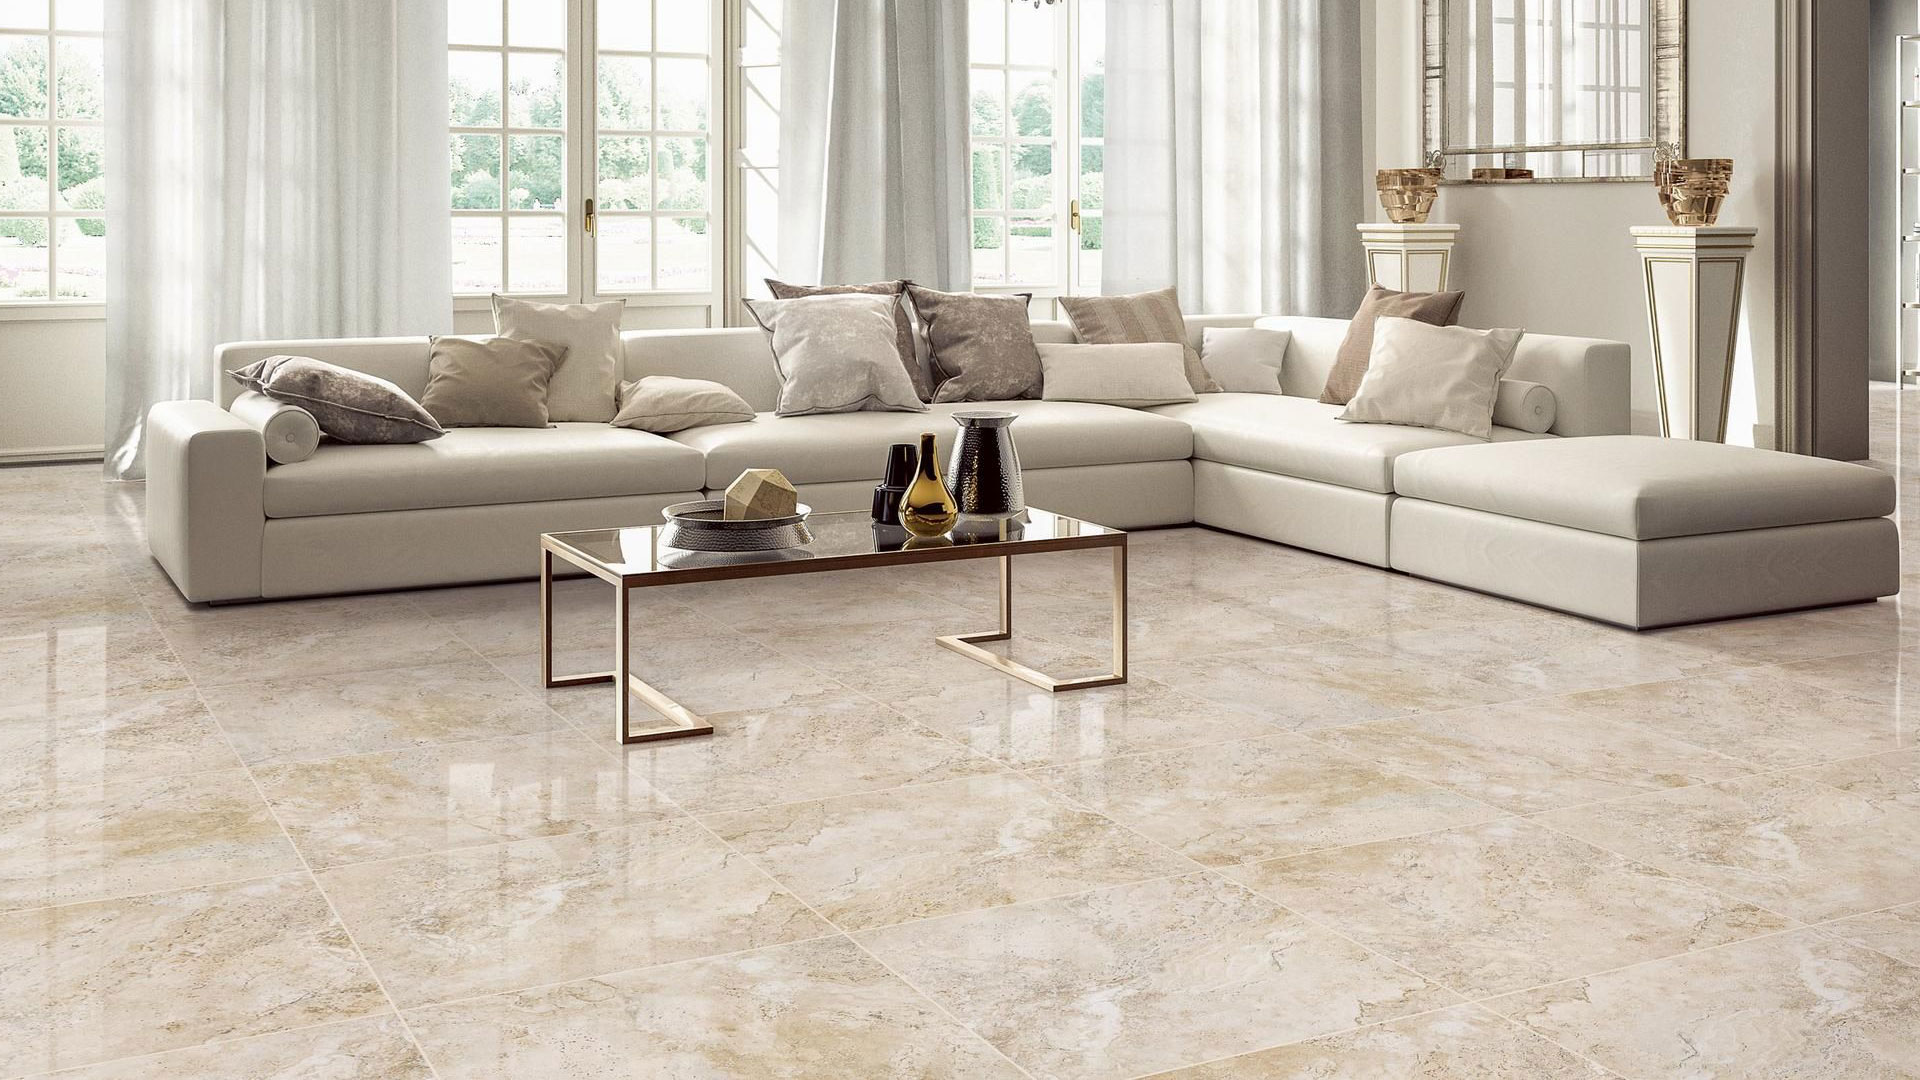 Porcelain Tiles for your Home Remodeling project in Sumter County, FL